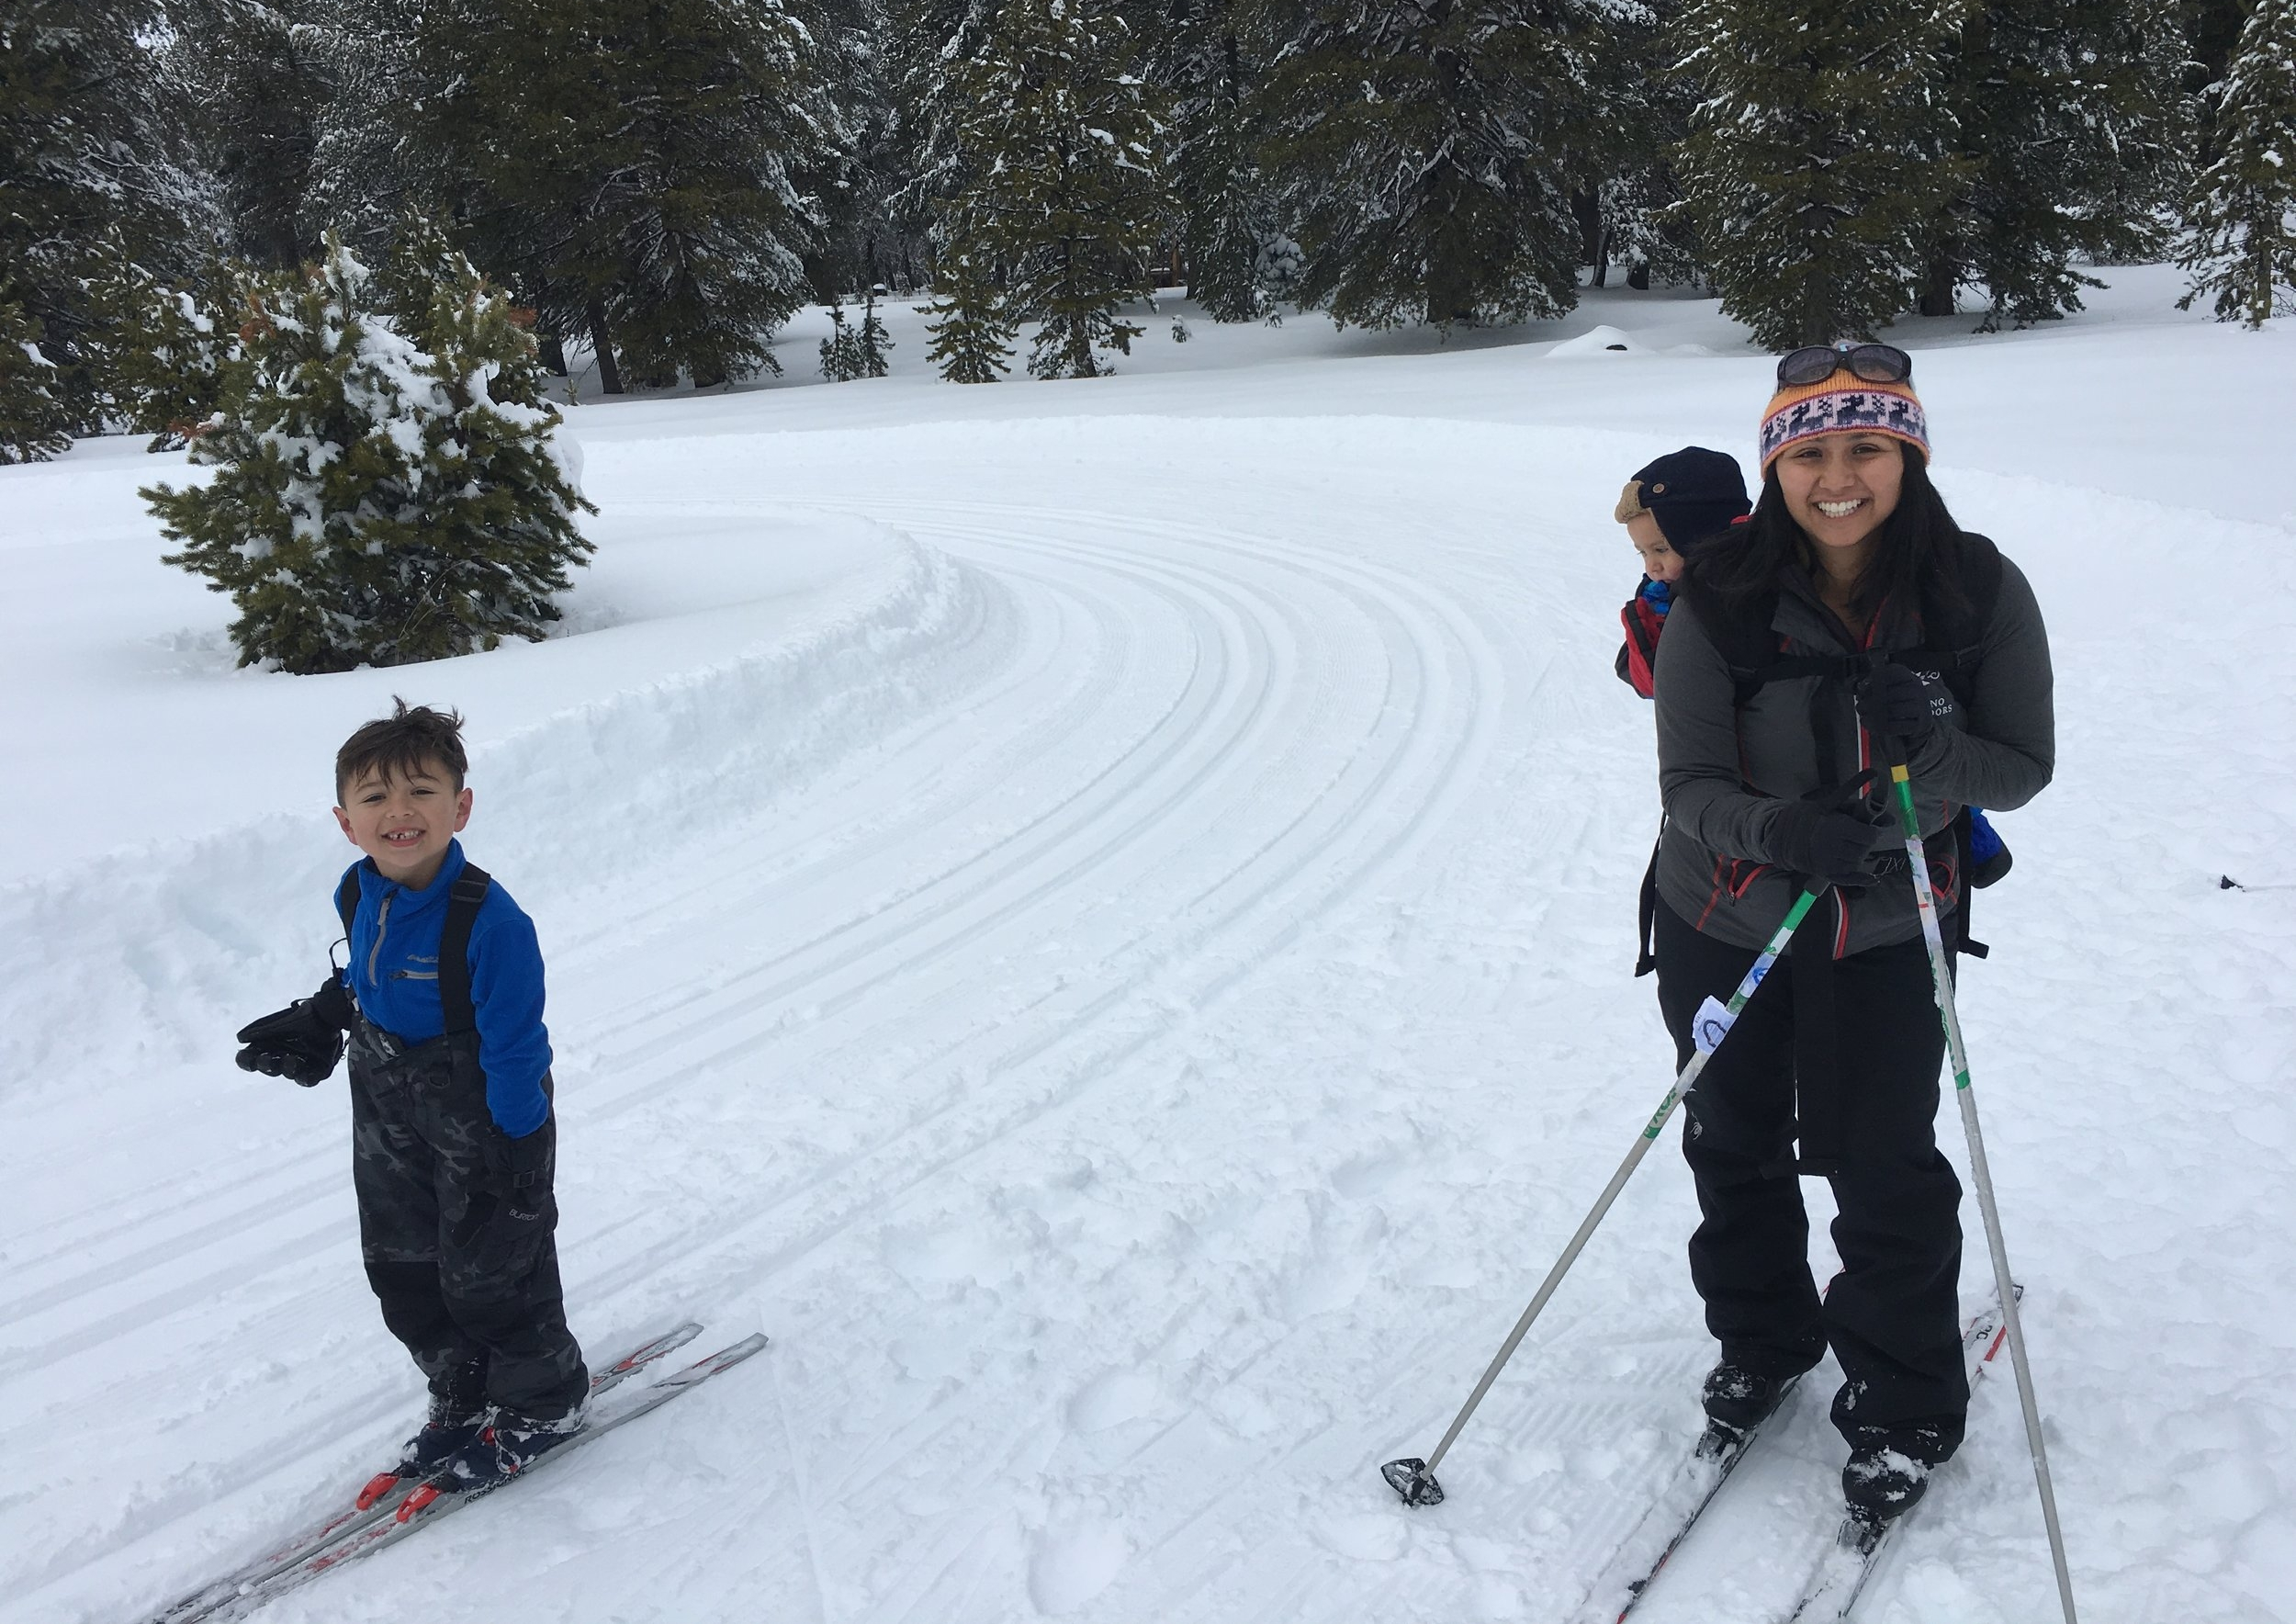 Not sure if baby-wearing is appropriate in cross-country skiing! Everyone is still alive.